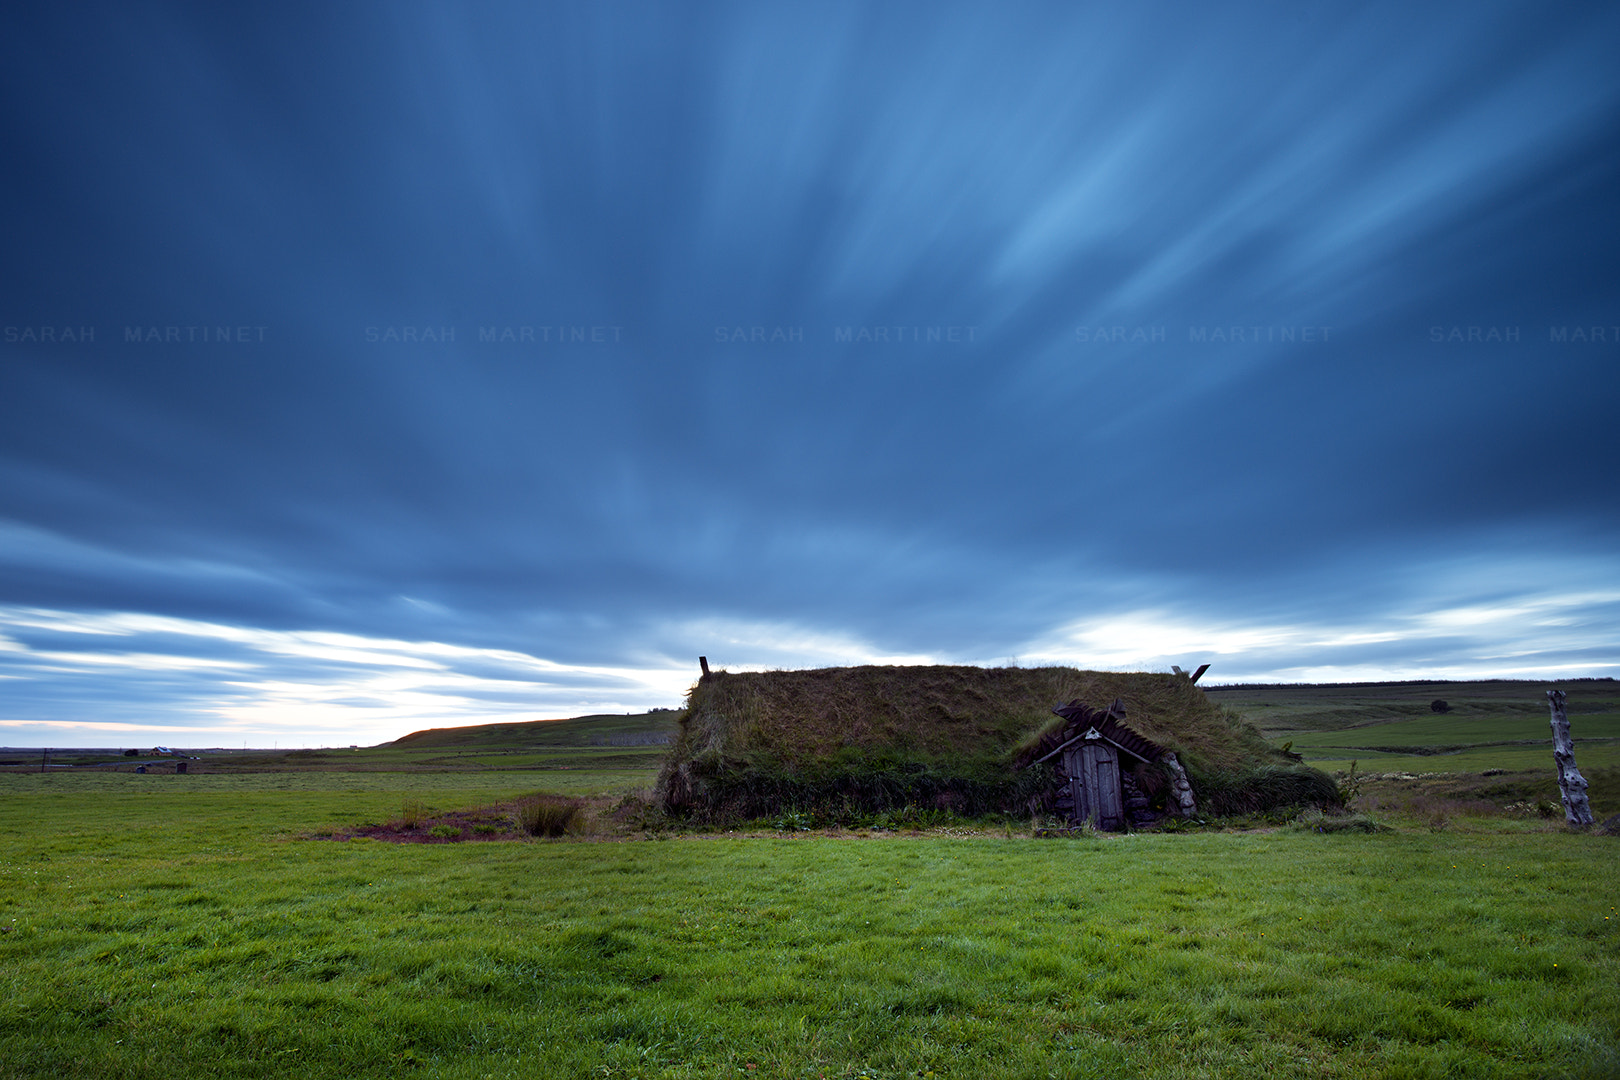 Photograph The little house by Sarah Martinet on 500px